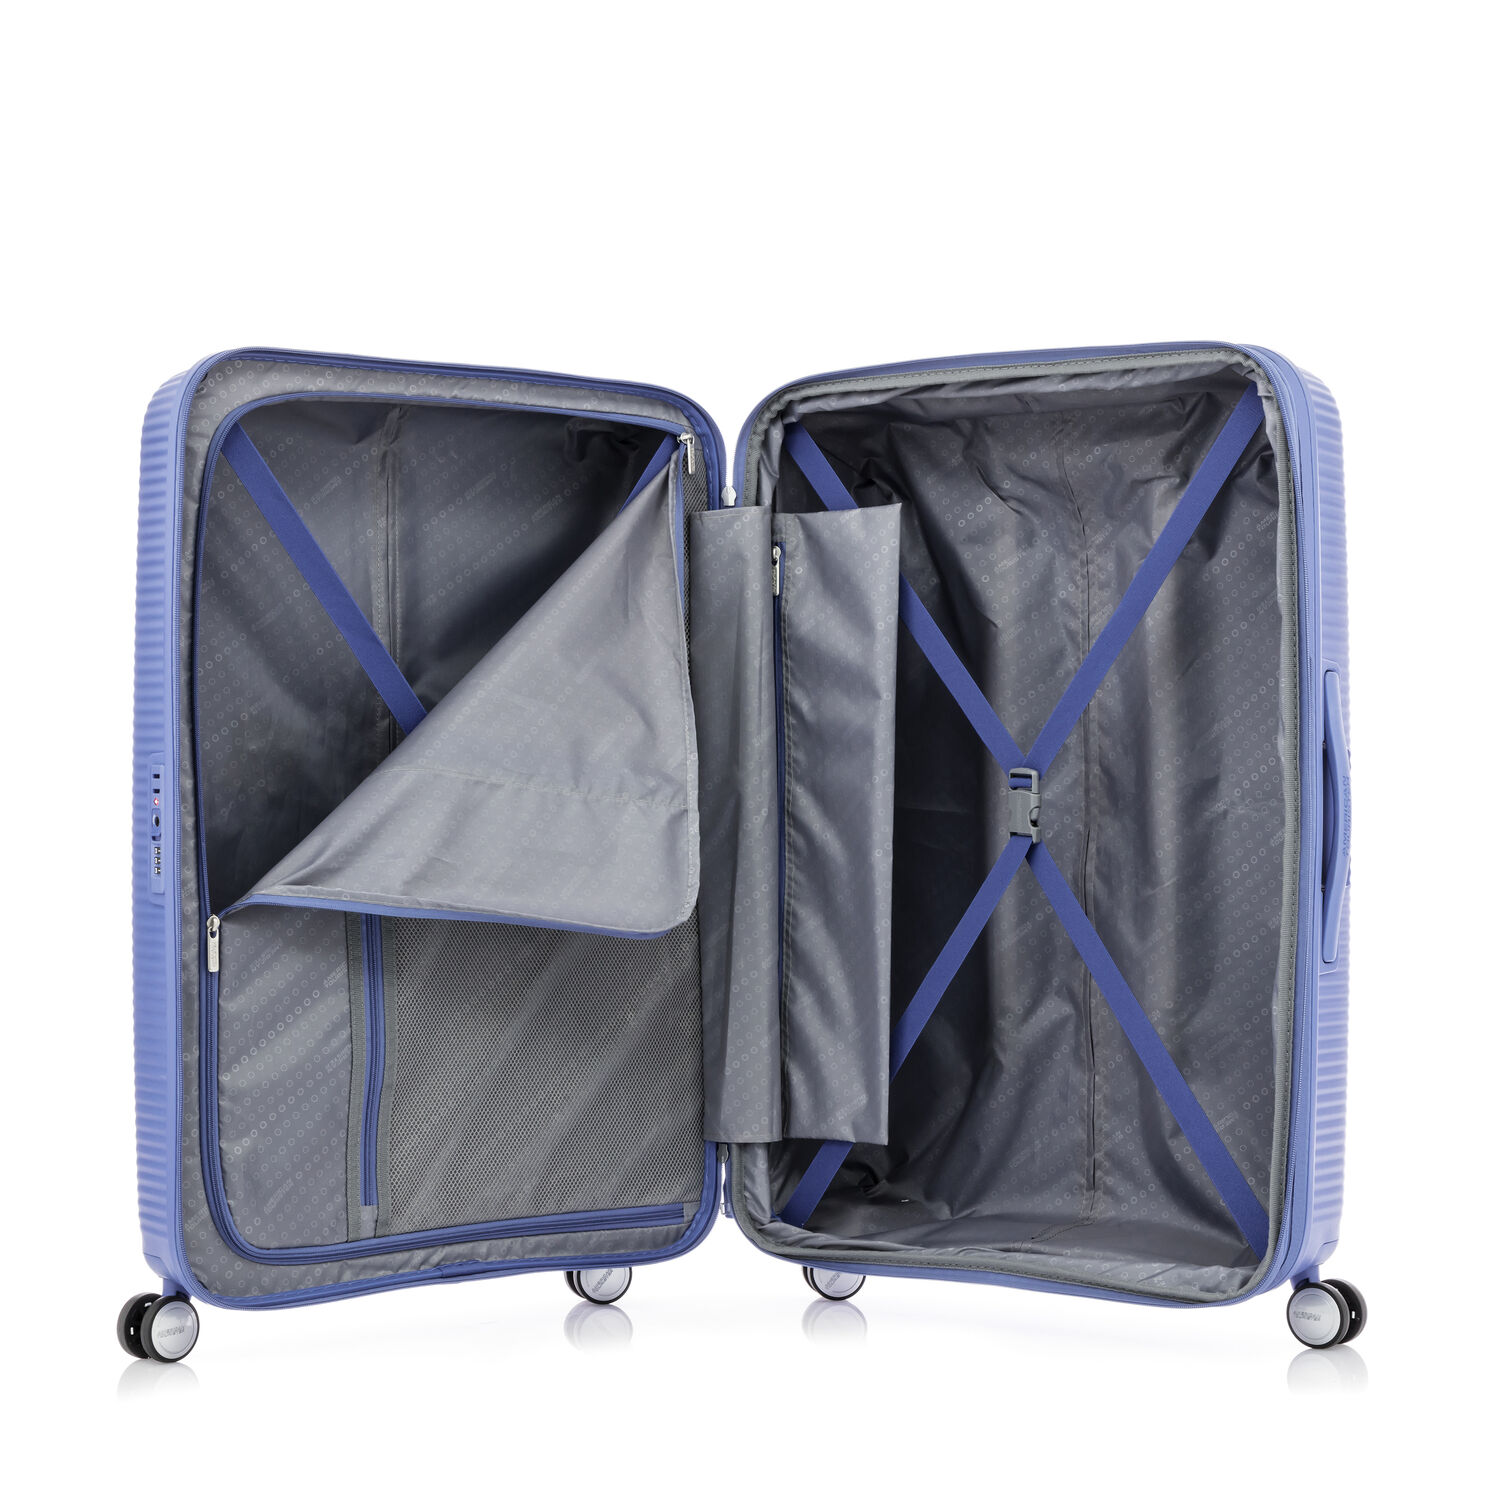 064496c4c American Tourister Curio Spinner Carry-On in the color Denim Blue.